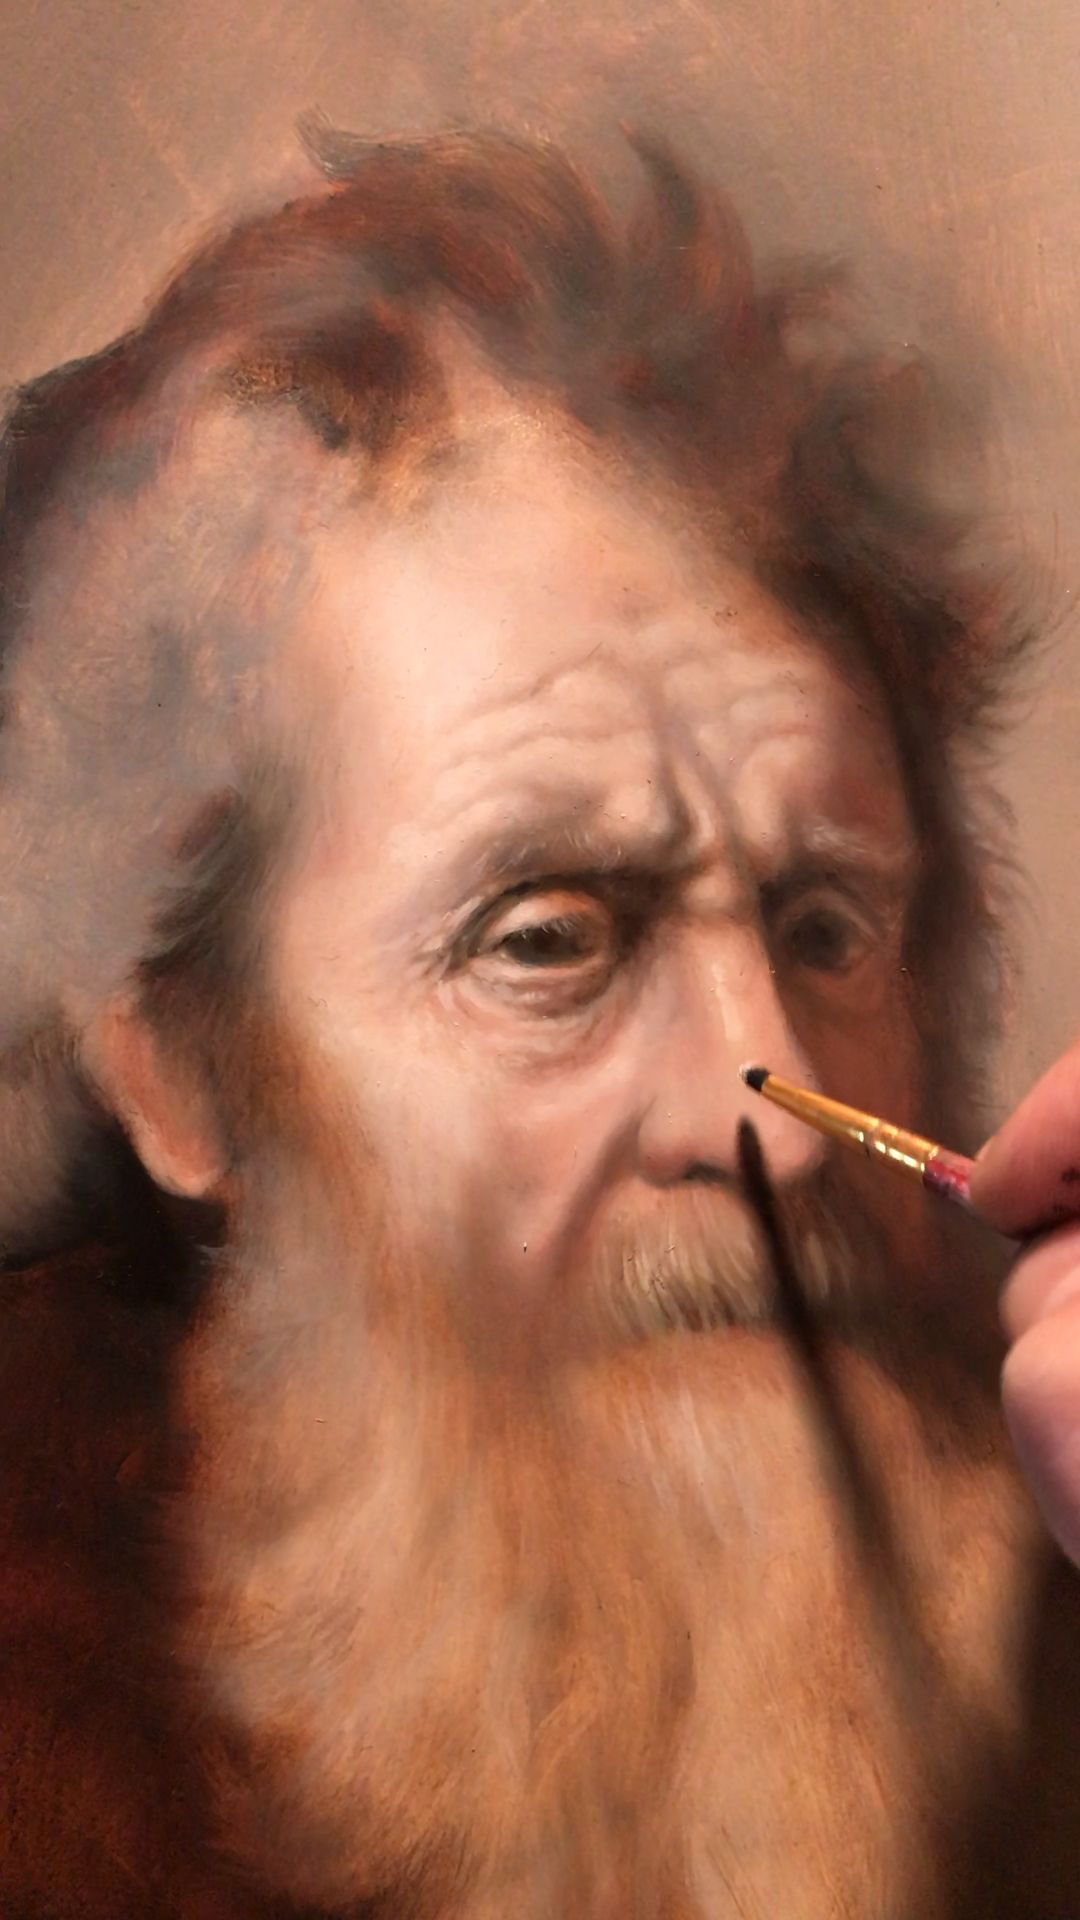 """Realism portrait painting Rembrandt master copy by classical figurative artist Eric Armusik.  Oil paint on panel, 11 x 14"""" 2020 work in progress.   Study with me - click the link #realistic #realism  #portraitpainting #rembrandt"""